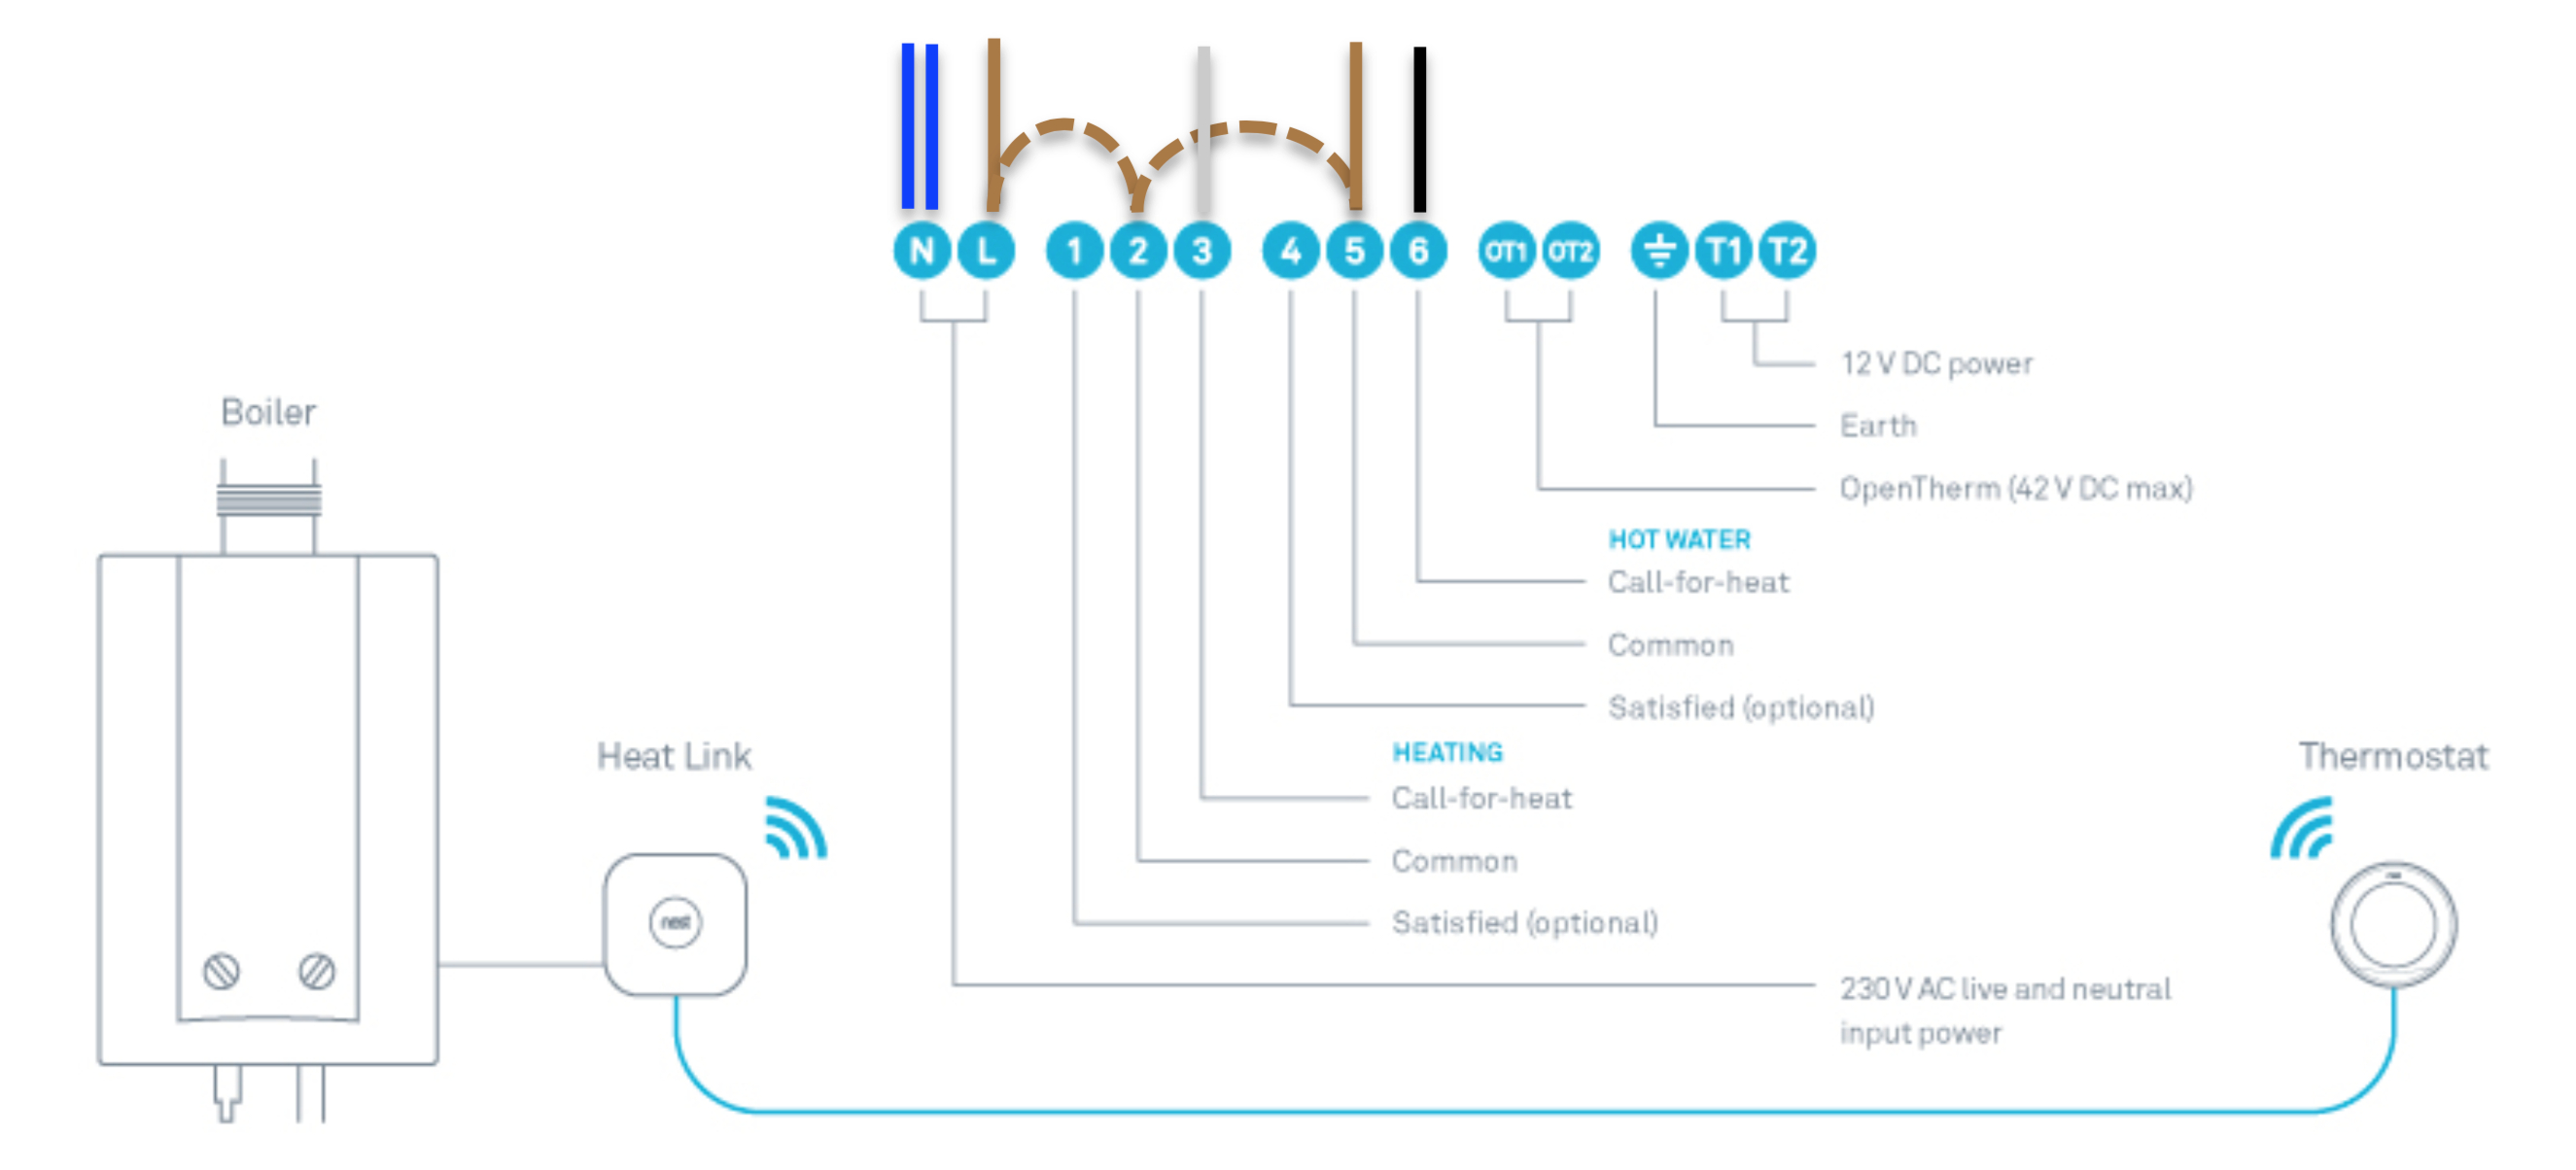 The Nest Wiring Diagram - Wiring Diagram Data Oreo - Nest Wiring Diagram